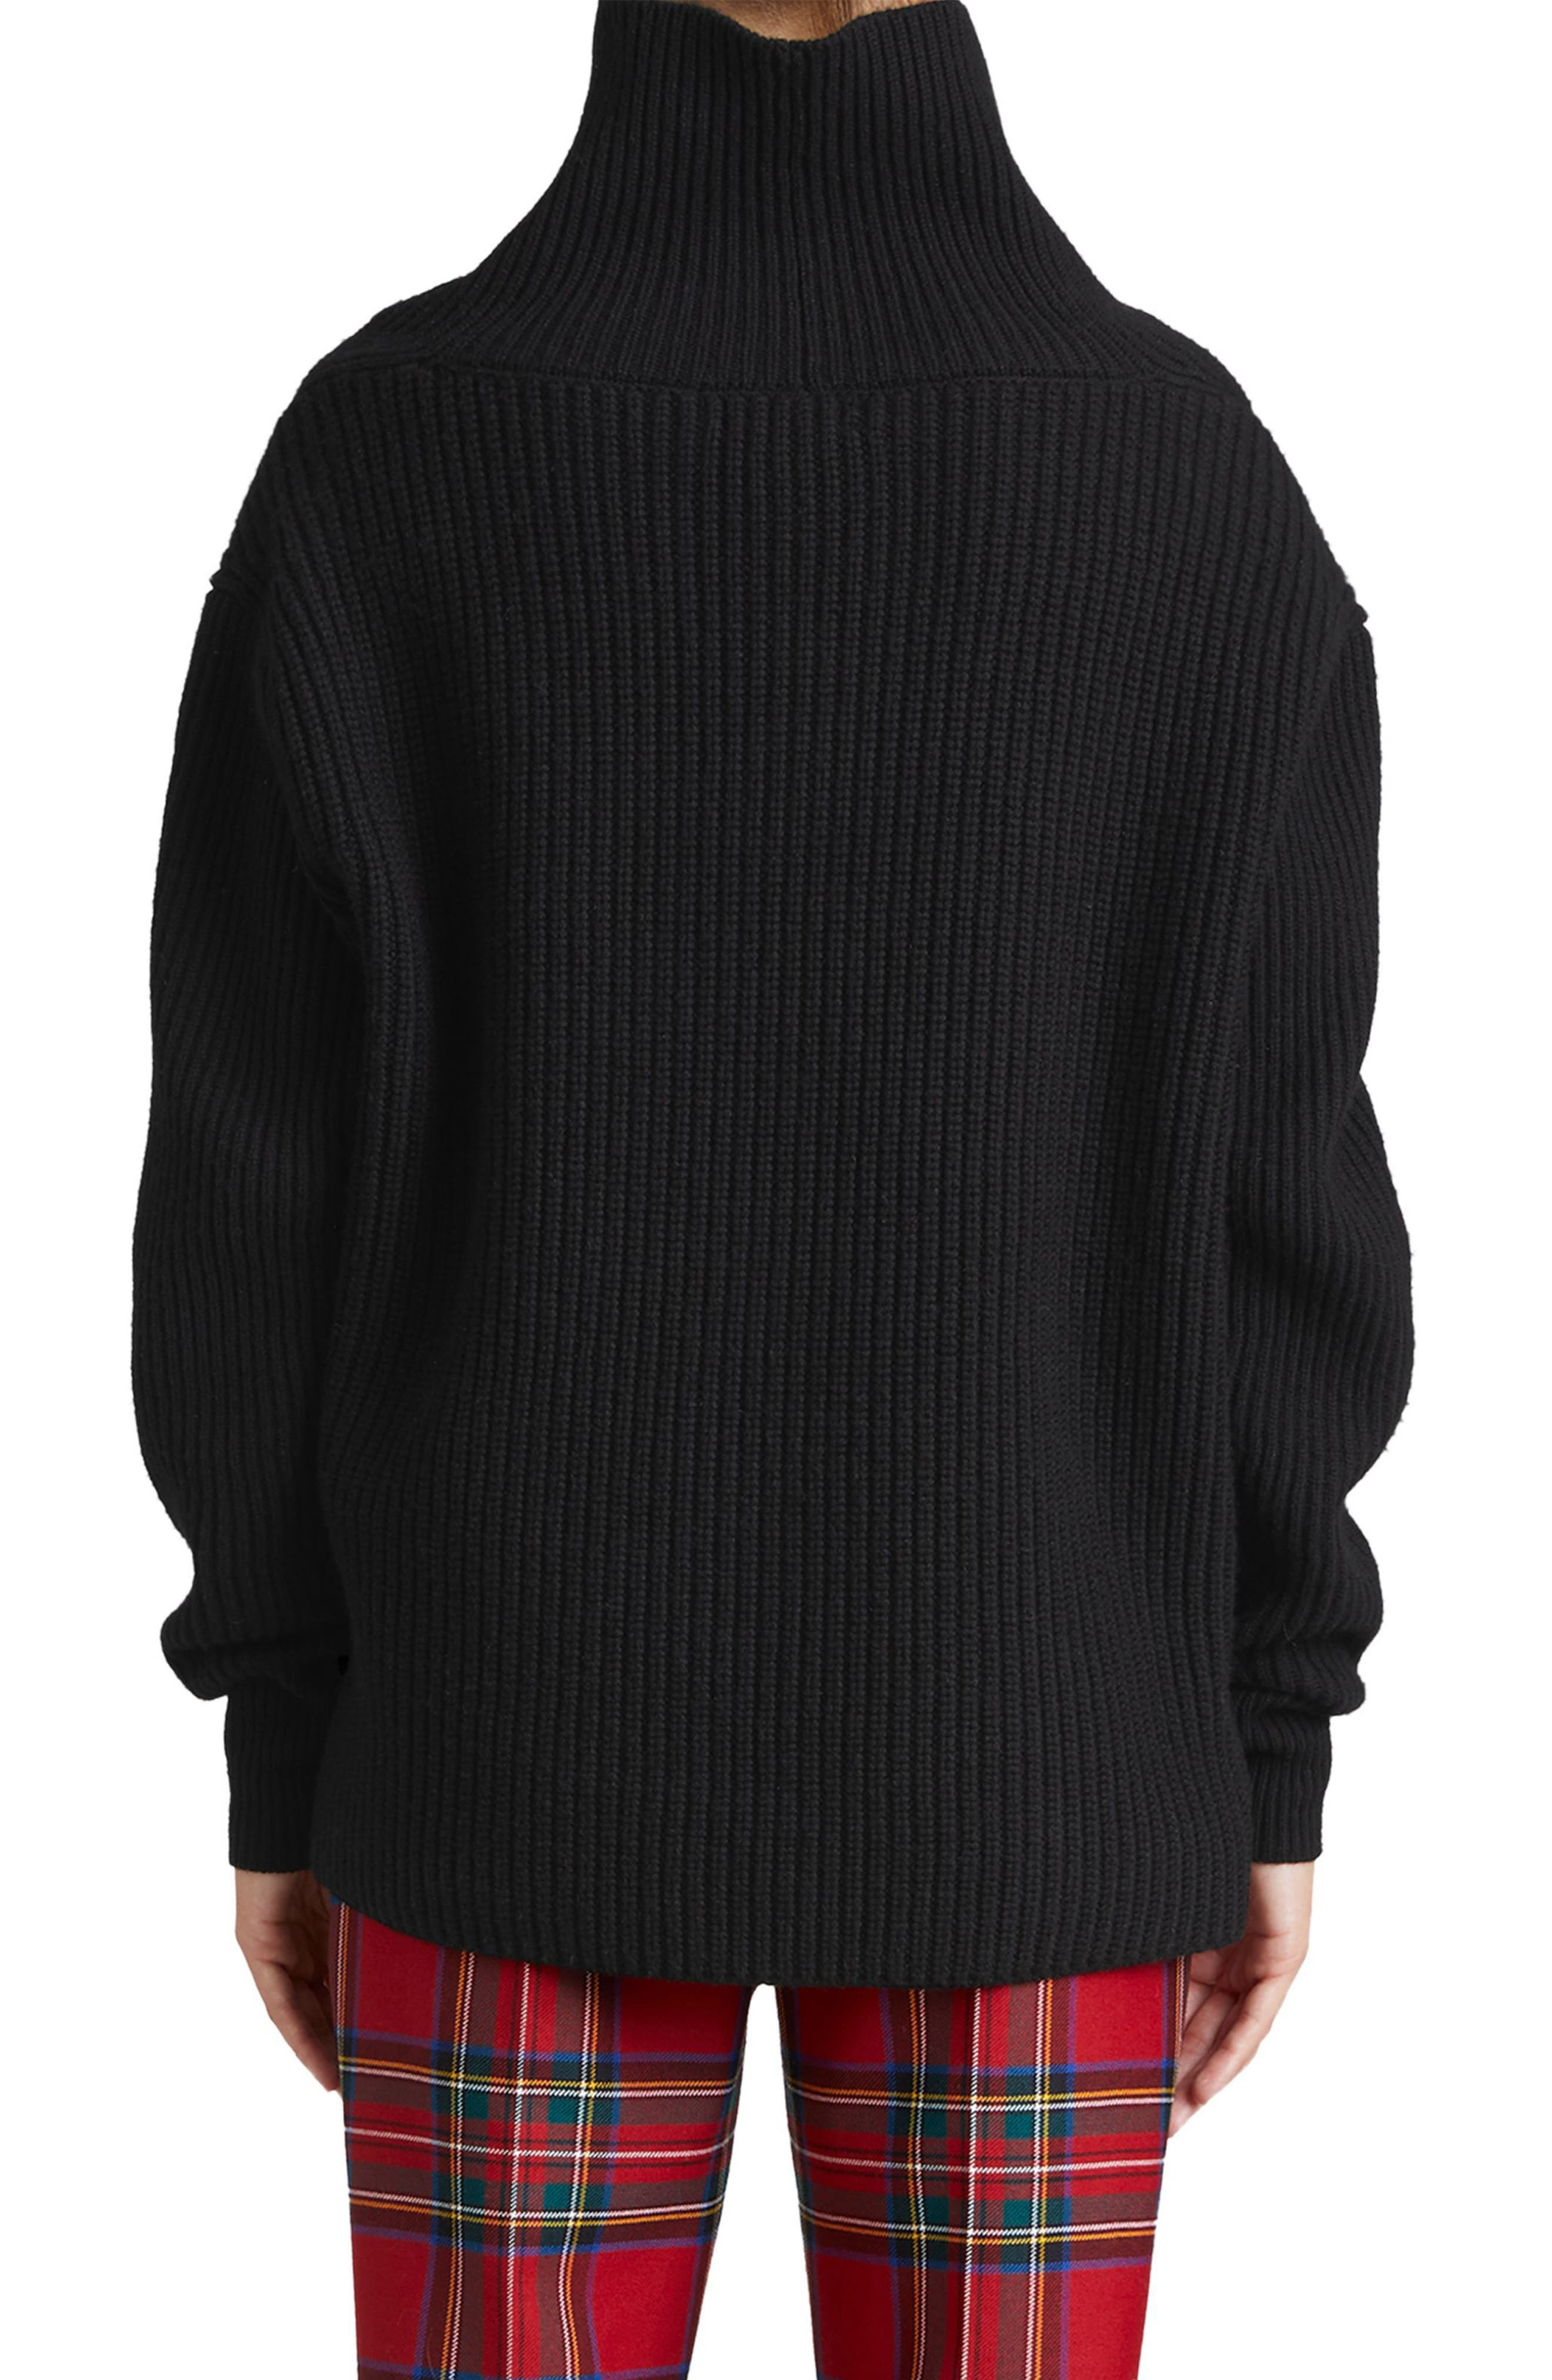 Fiora Check Wool & Cashmere Turtleneck Sweater,                             Alternate thumbnail 2, color,                             001